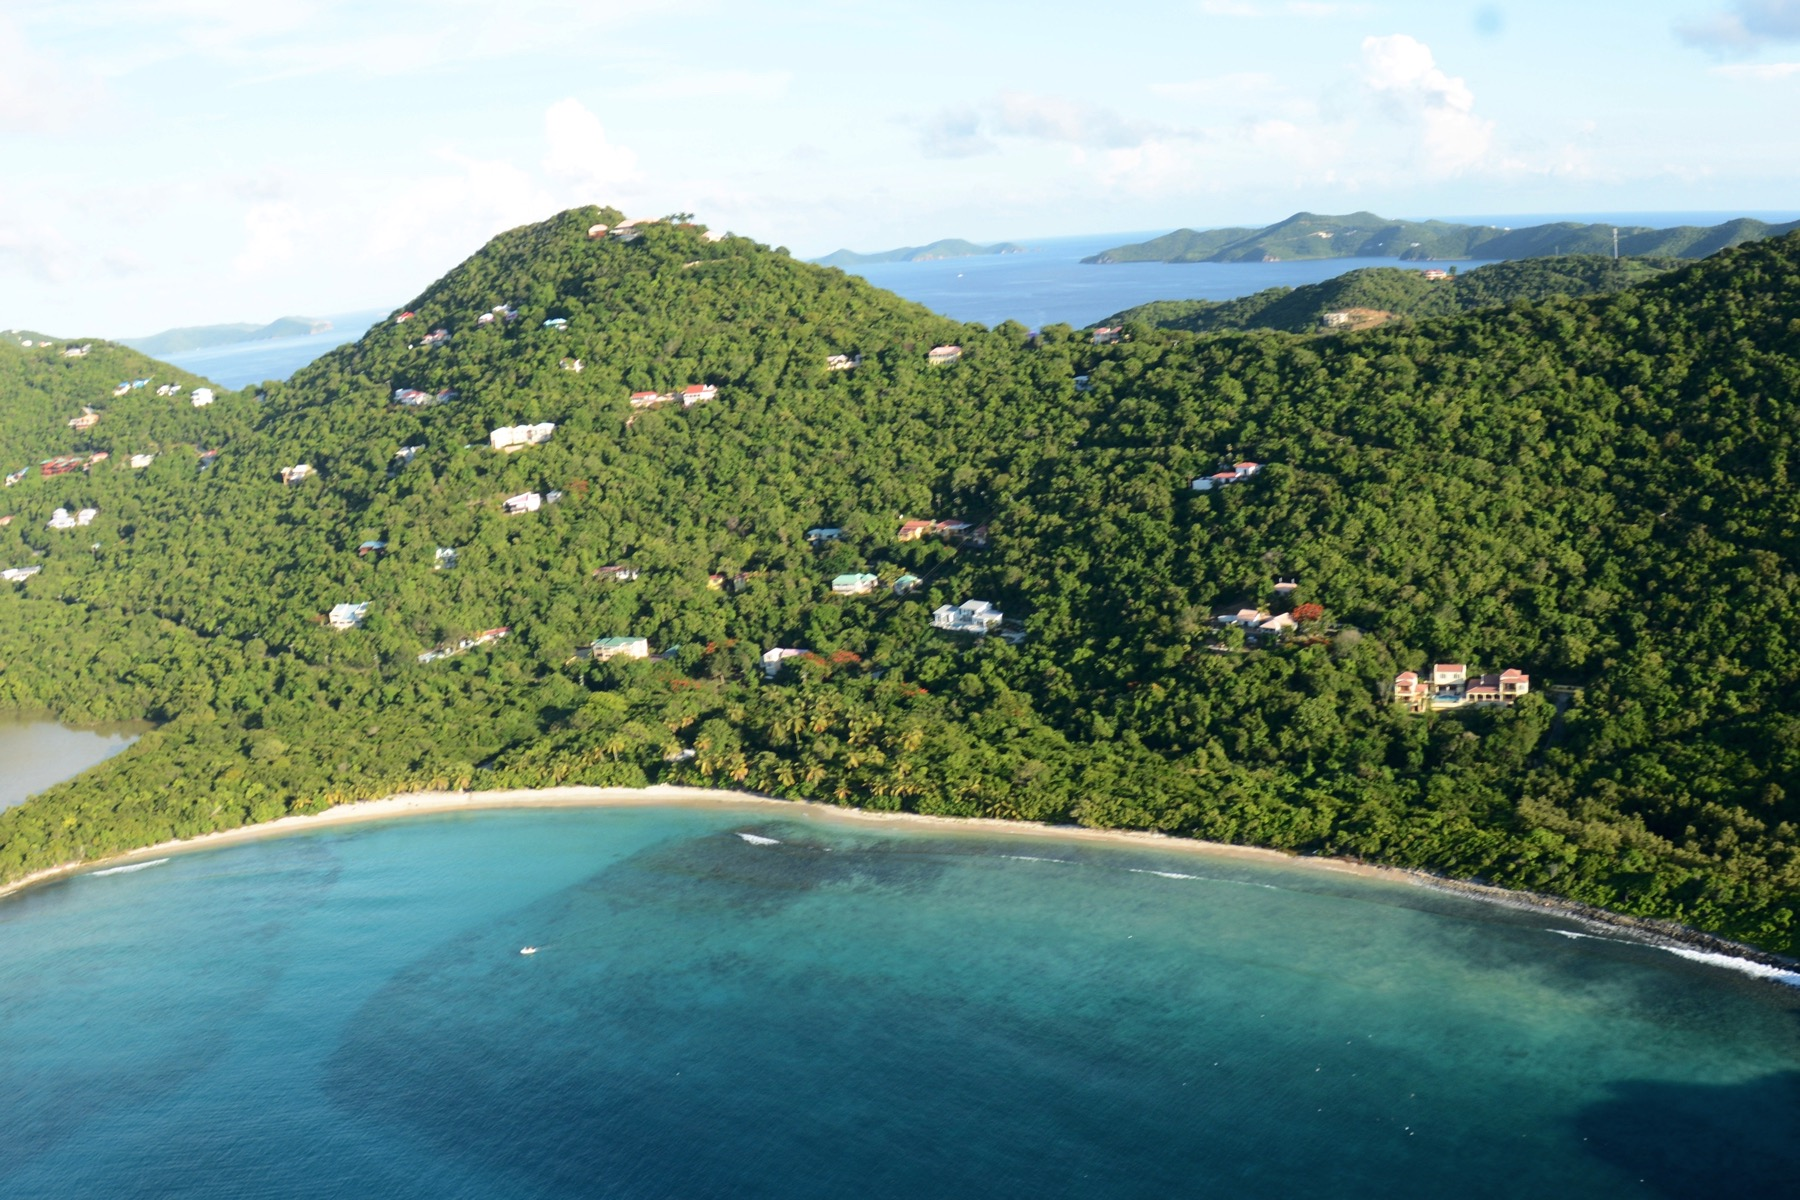 أراضي للـ Sale في Belmont Land 55 Belmont, Tortola British Virgin Islands